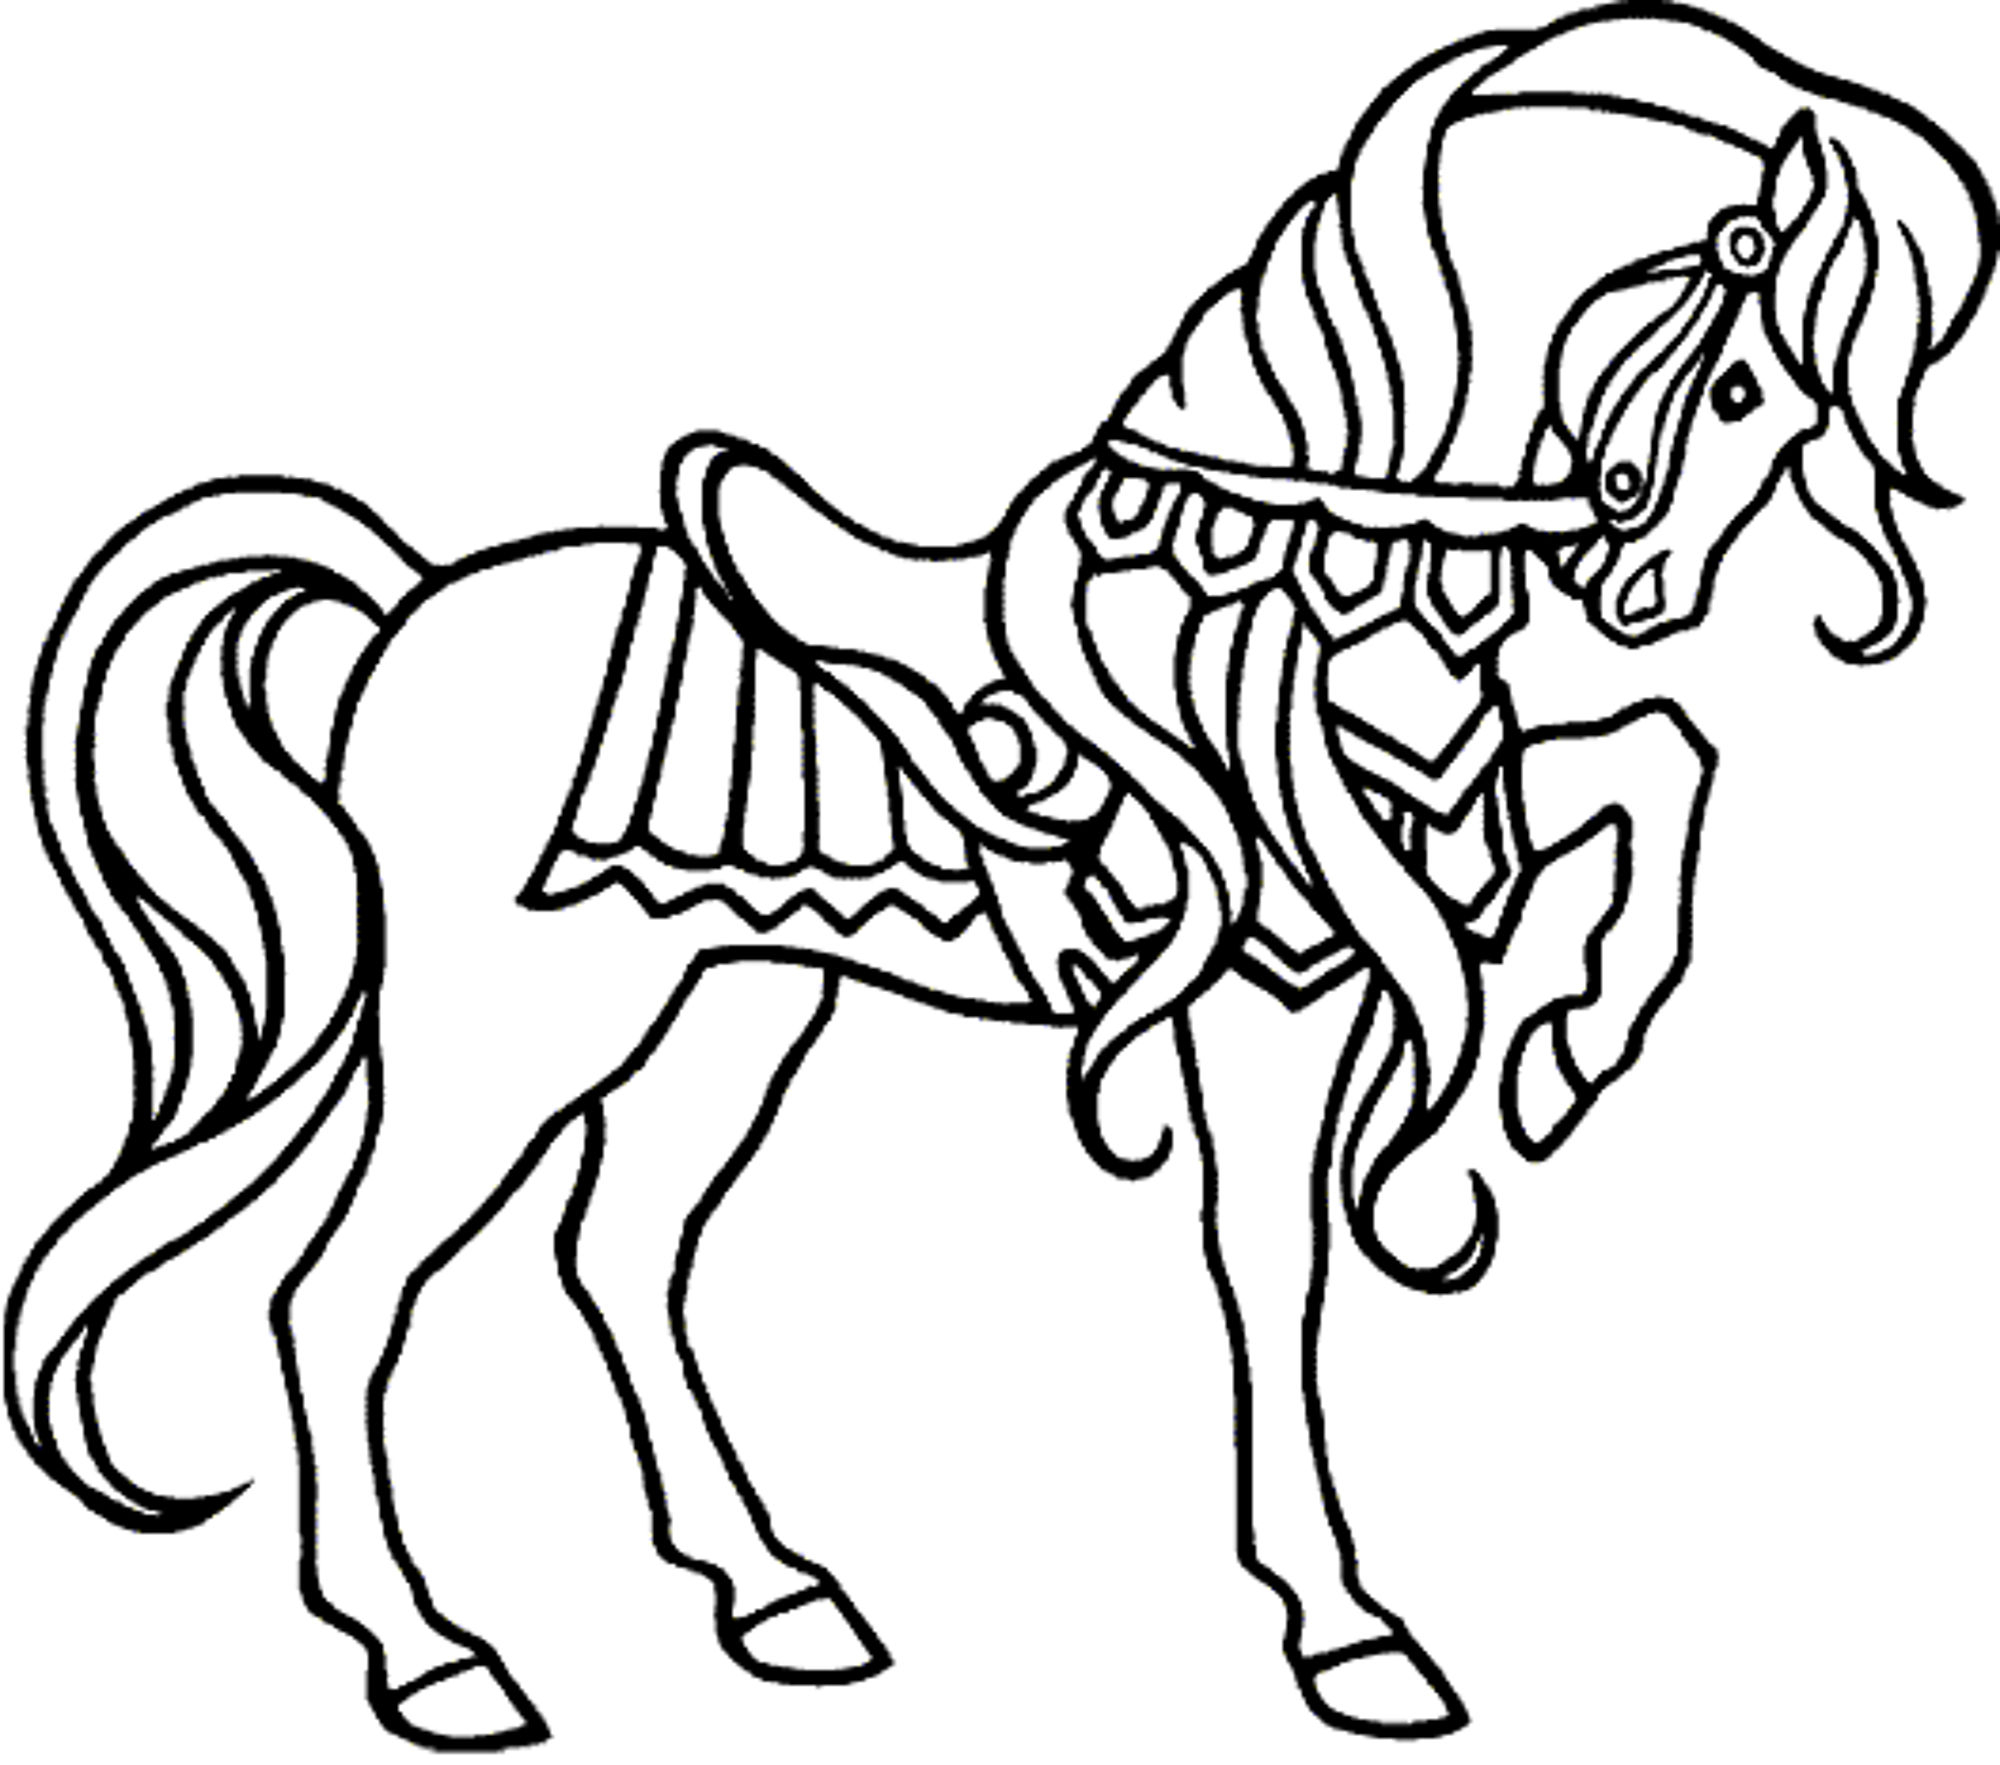 Fun Horse Coloring Pages for Your Kids Printable Collection Of Horse Detailed Coloring Pages Gallery